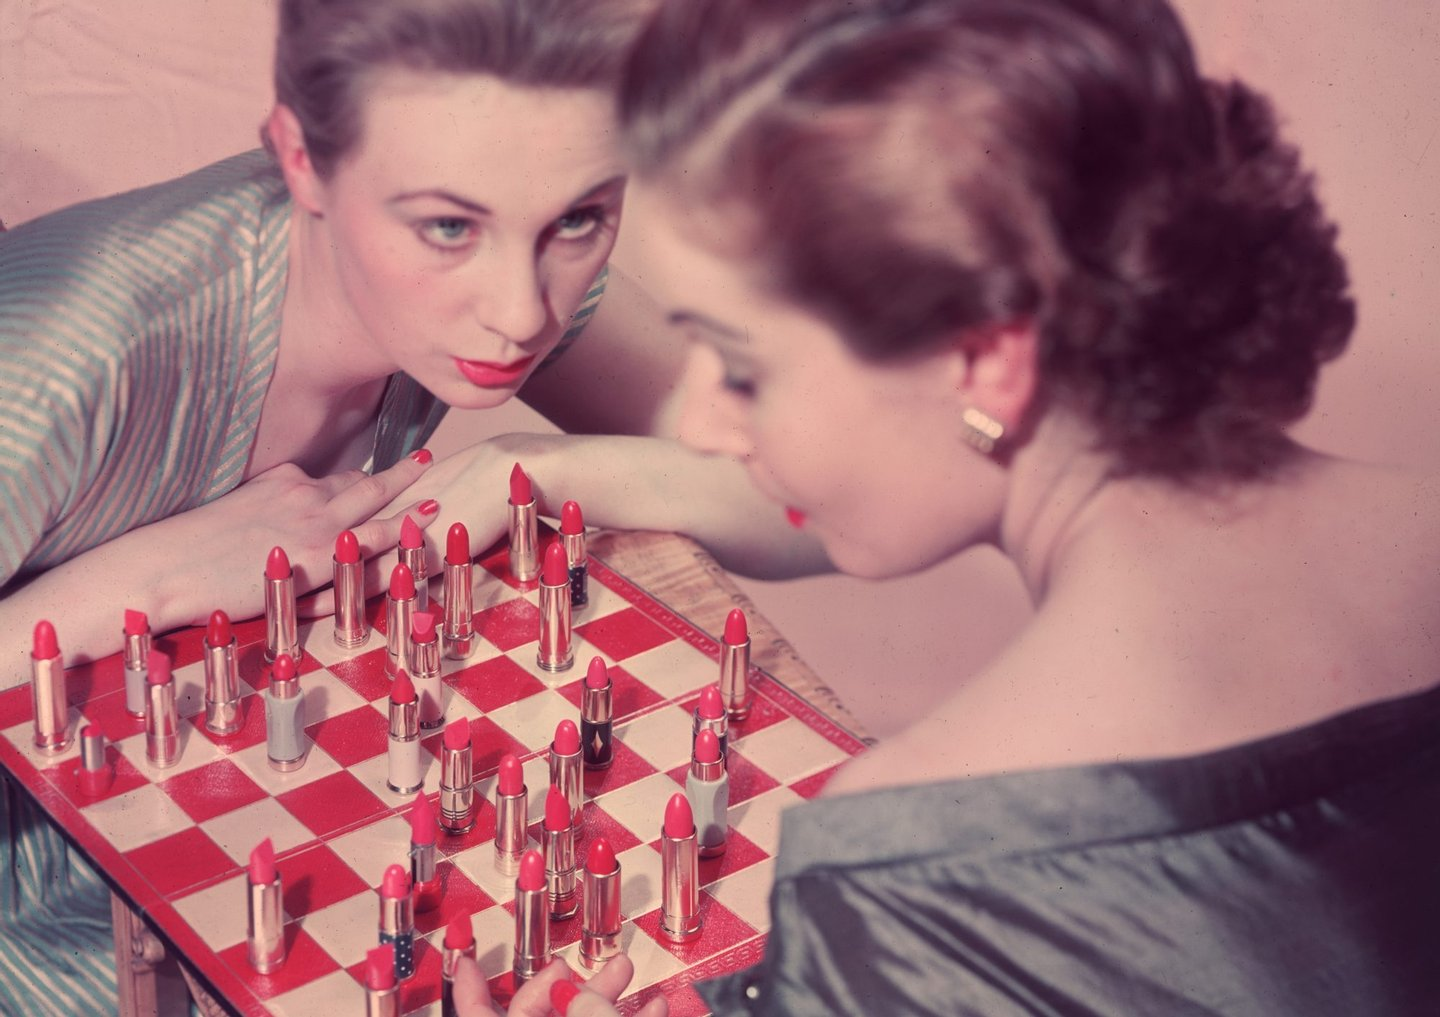 circa 1955: Two women playing an unusual game of chess, with lipstick instead of chess pieces. (Photo by Chaloner Woods/Getty Images)